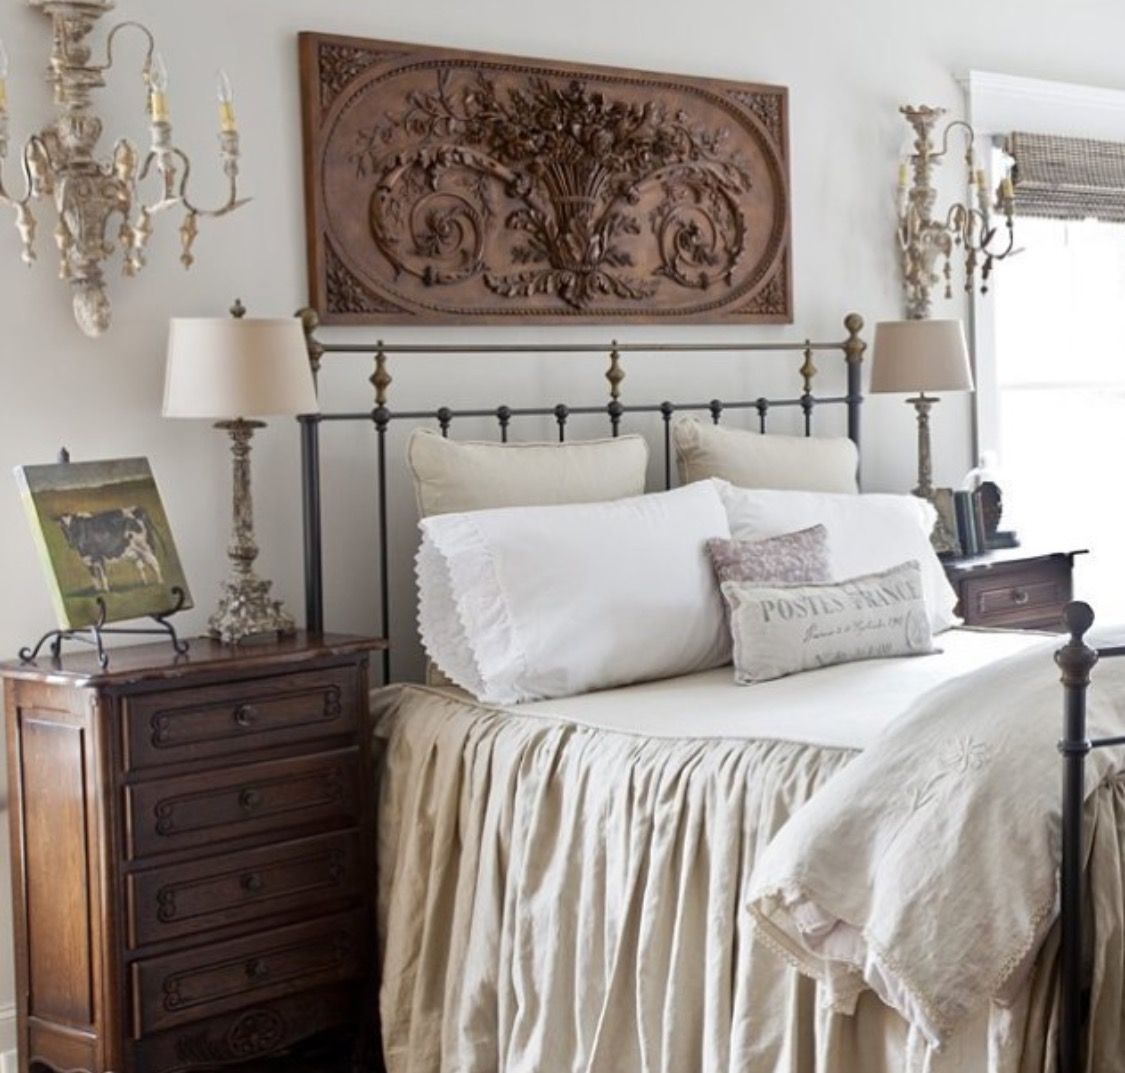 French country bedding | Vintage Chic/ Cottage Style/French/Country ...